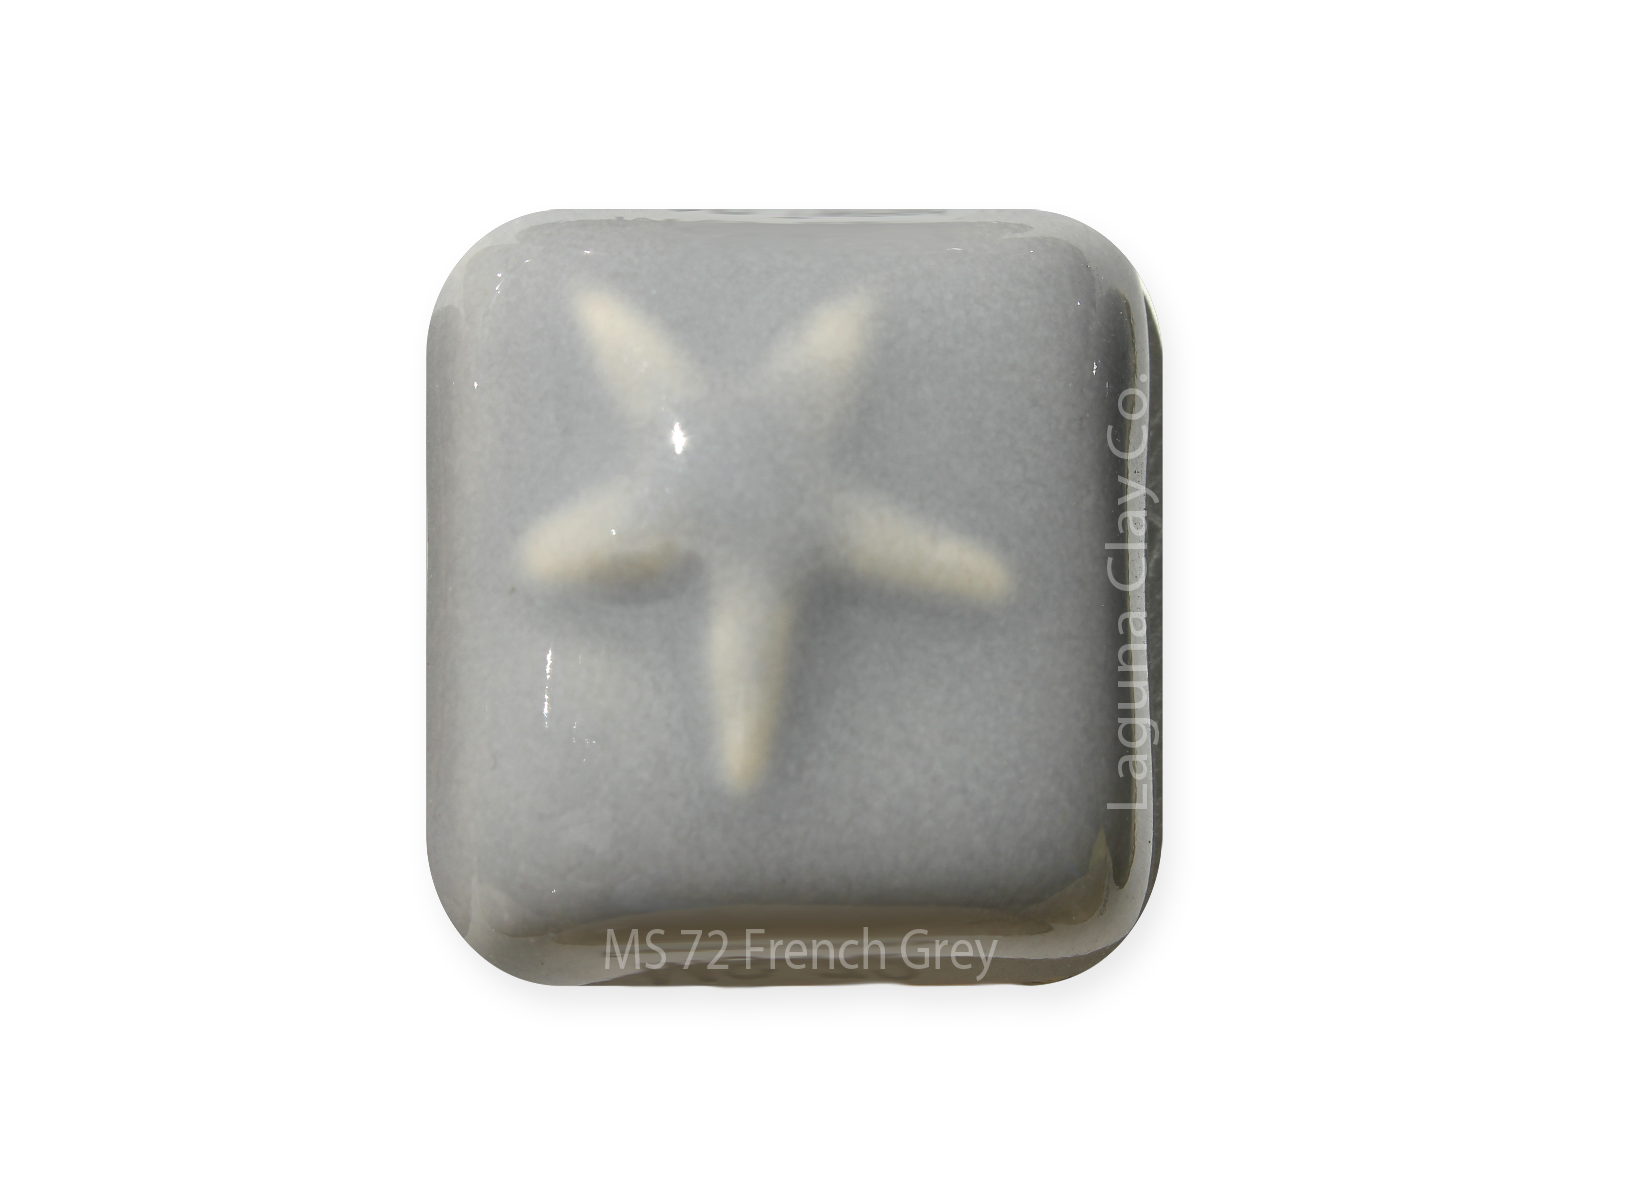 MS-72 French Grey